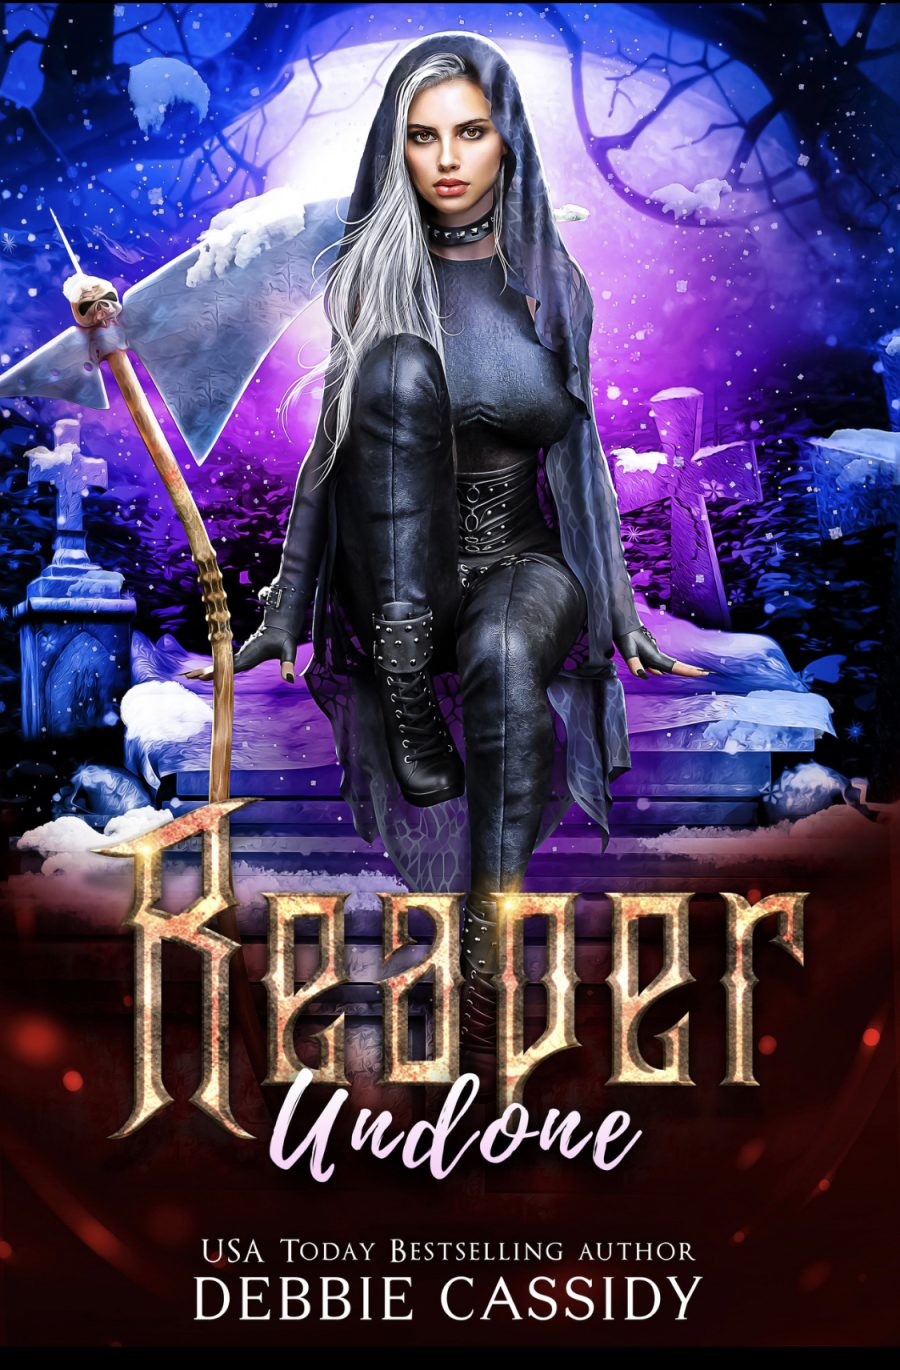 Reaper Undone (Deadside Reapers - Book 5) by Debbie Cassidy - A Book Review #BookReview #SlowBurn #RH #PNR #WhyChoose